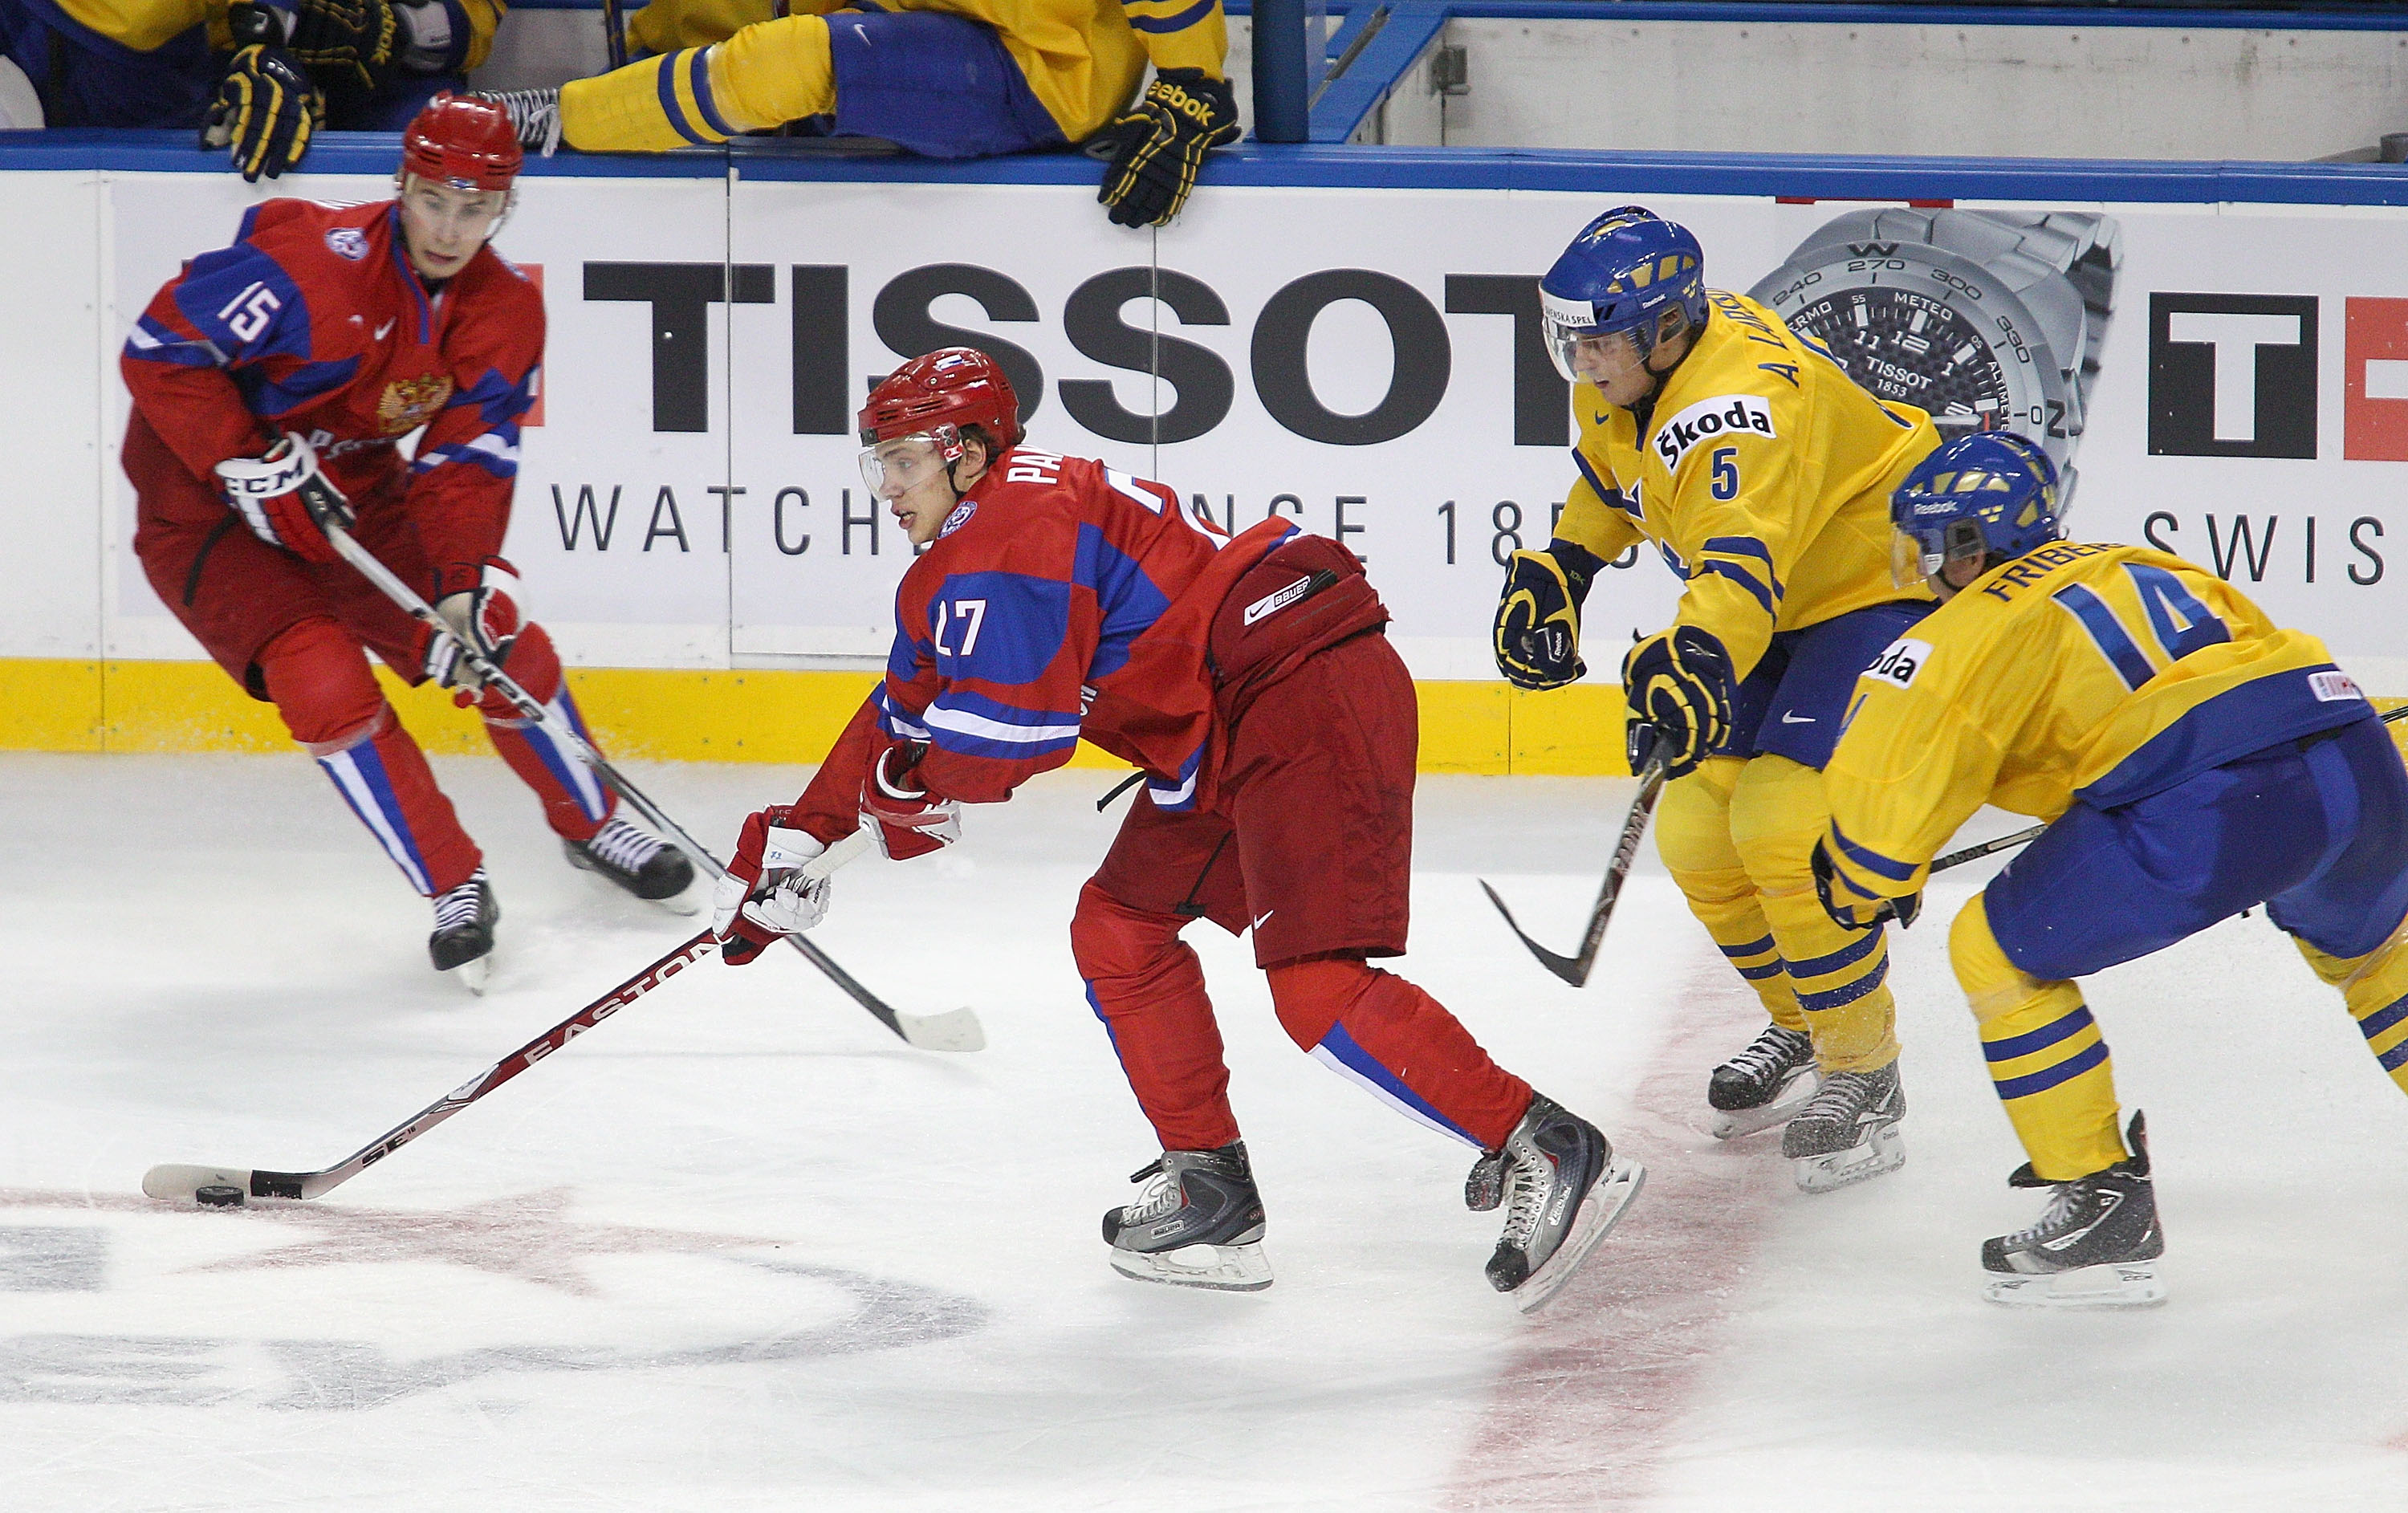 BUFFALO, NY - JANUARY 03: Artemi Panarin #27 and Artyom Voronin #15  of Russia skate against Adam Larsson #5 and Max Friberg #14 of  Sweden during the 2011 IIHF World U20 Championship Semi Final game between Sweden and Russia on January 3, 2011 in Buffalo